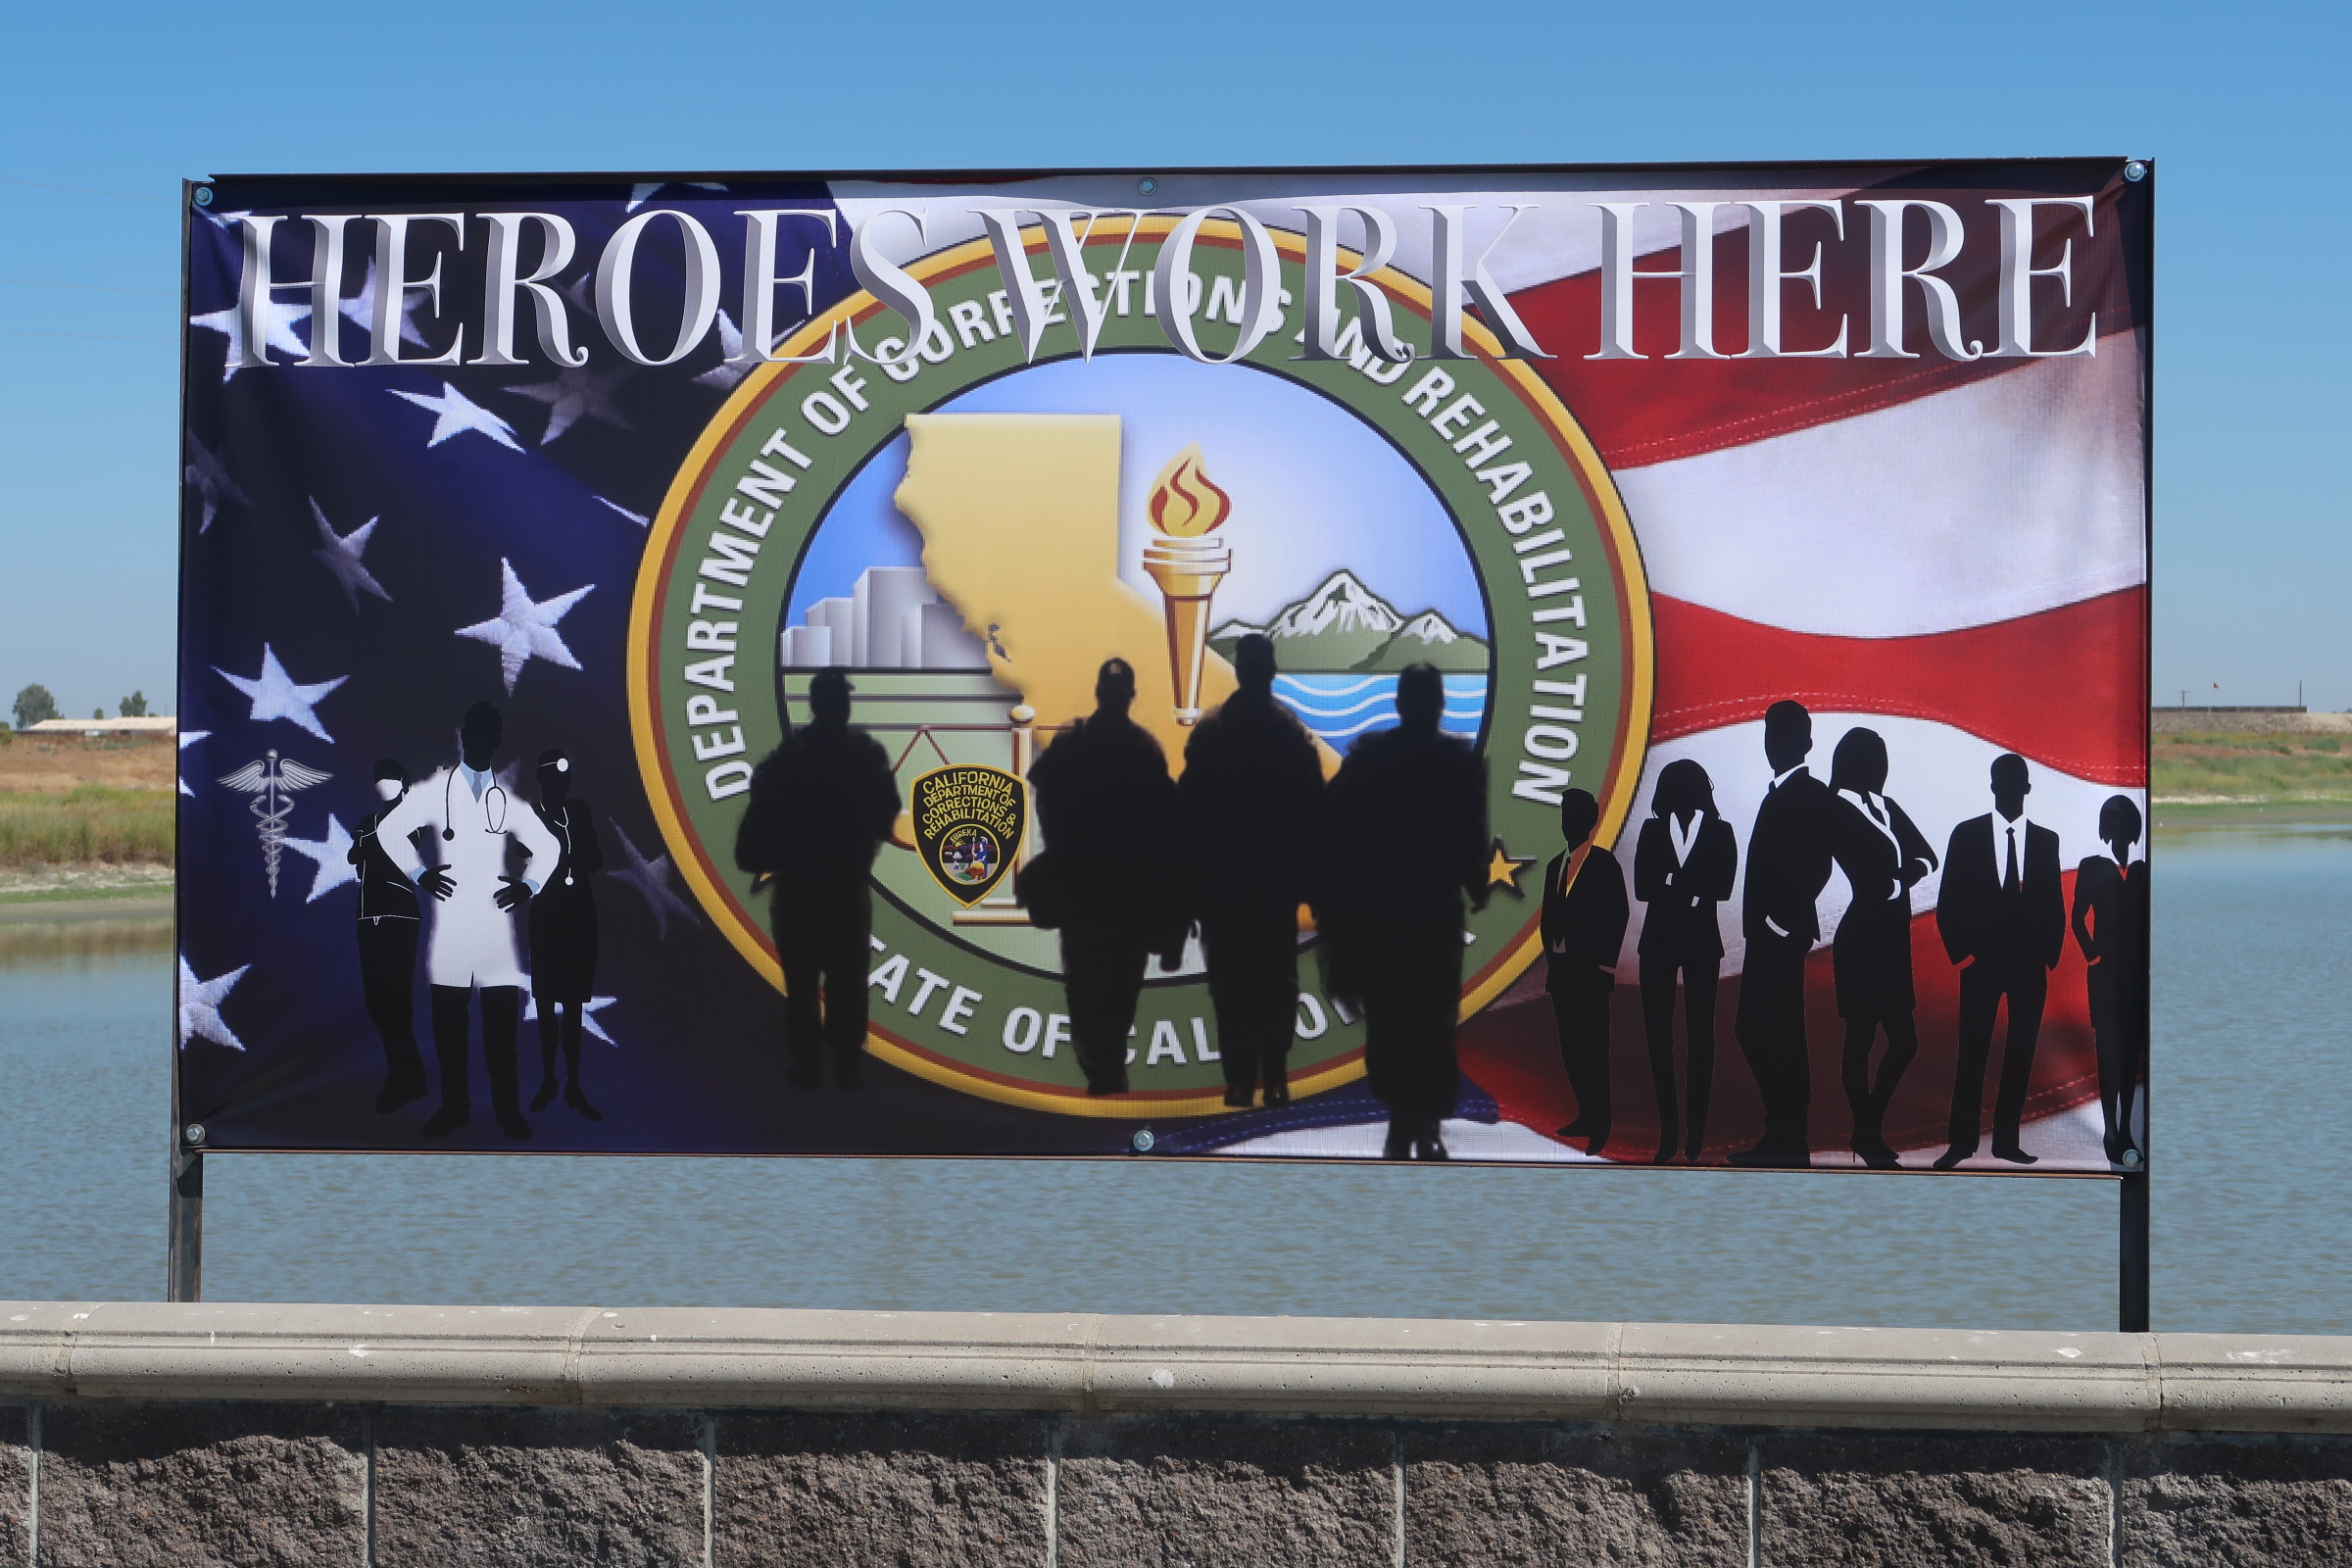 Heroes work here sign with the CDCR logo and an American flag.